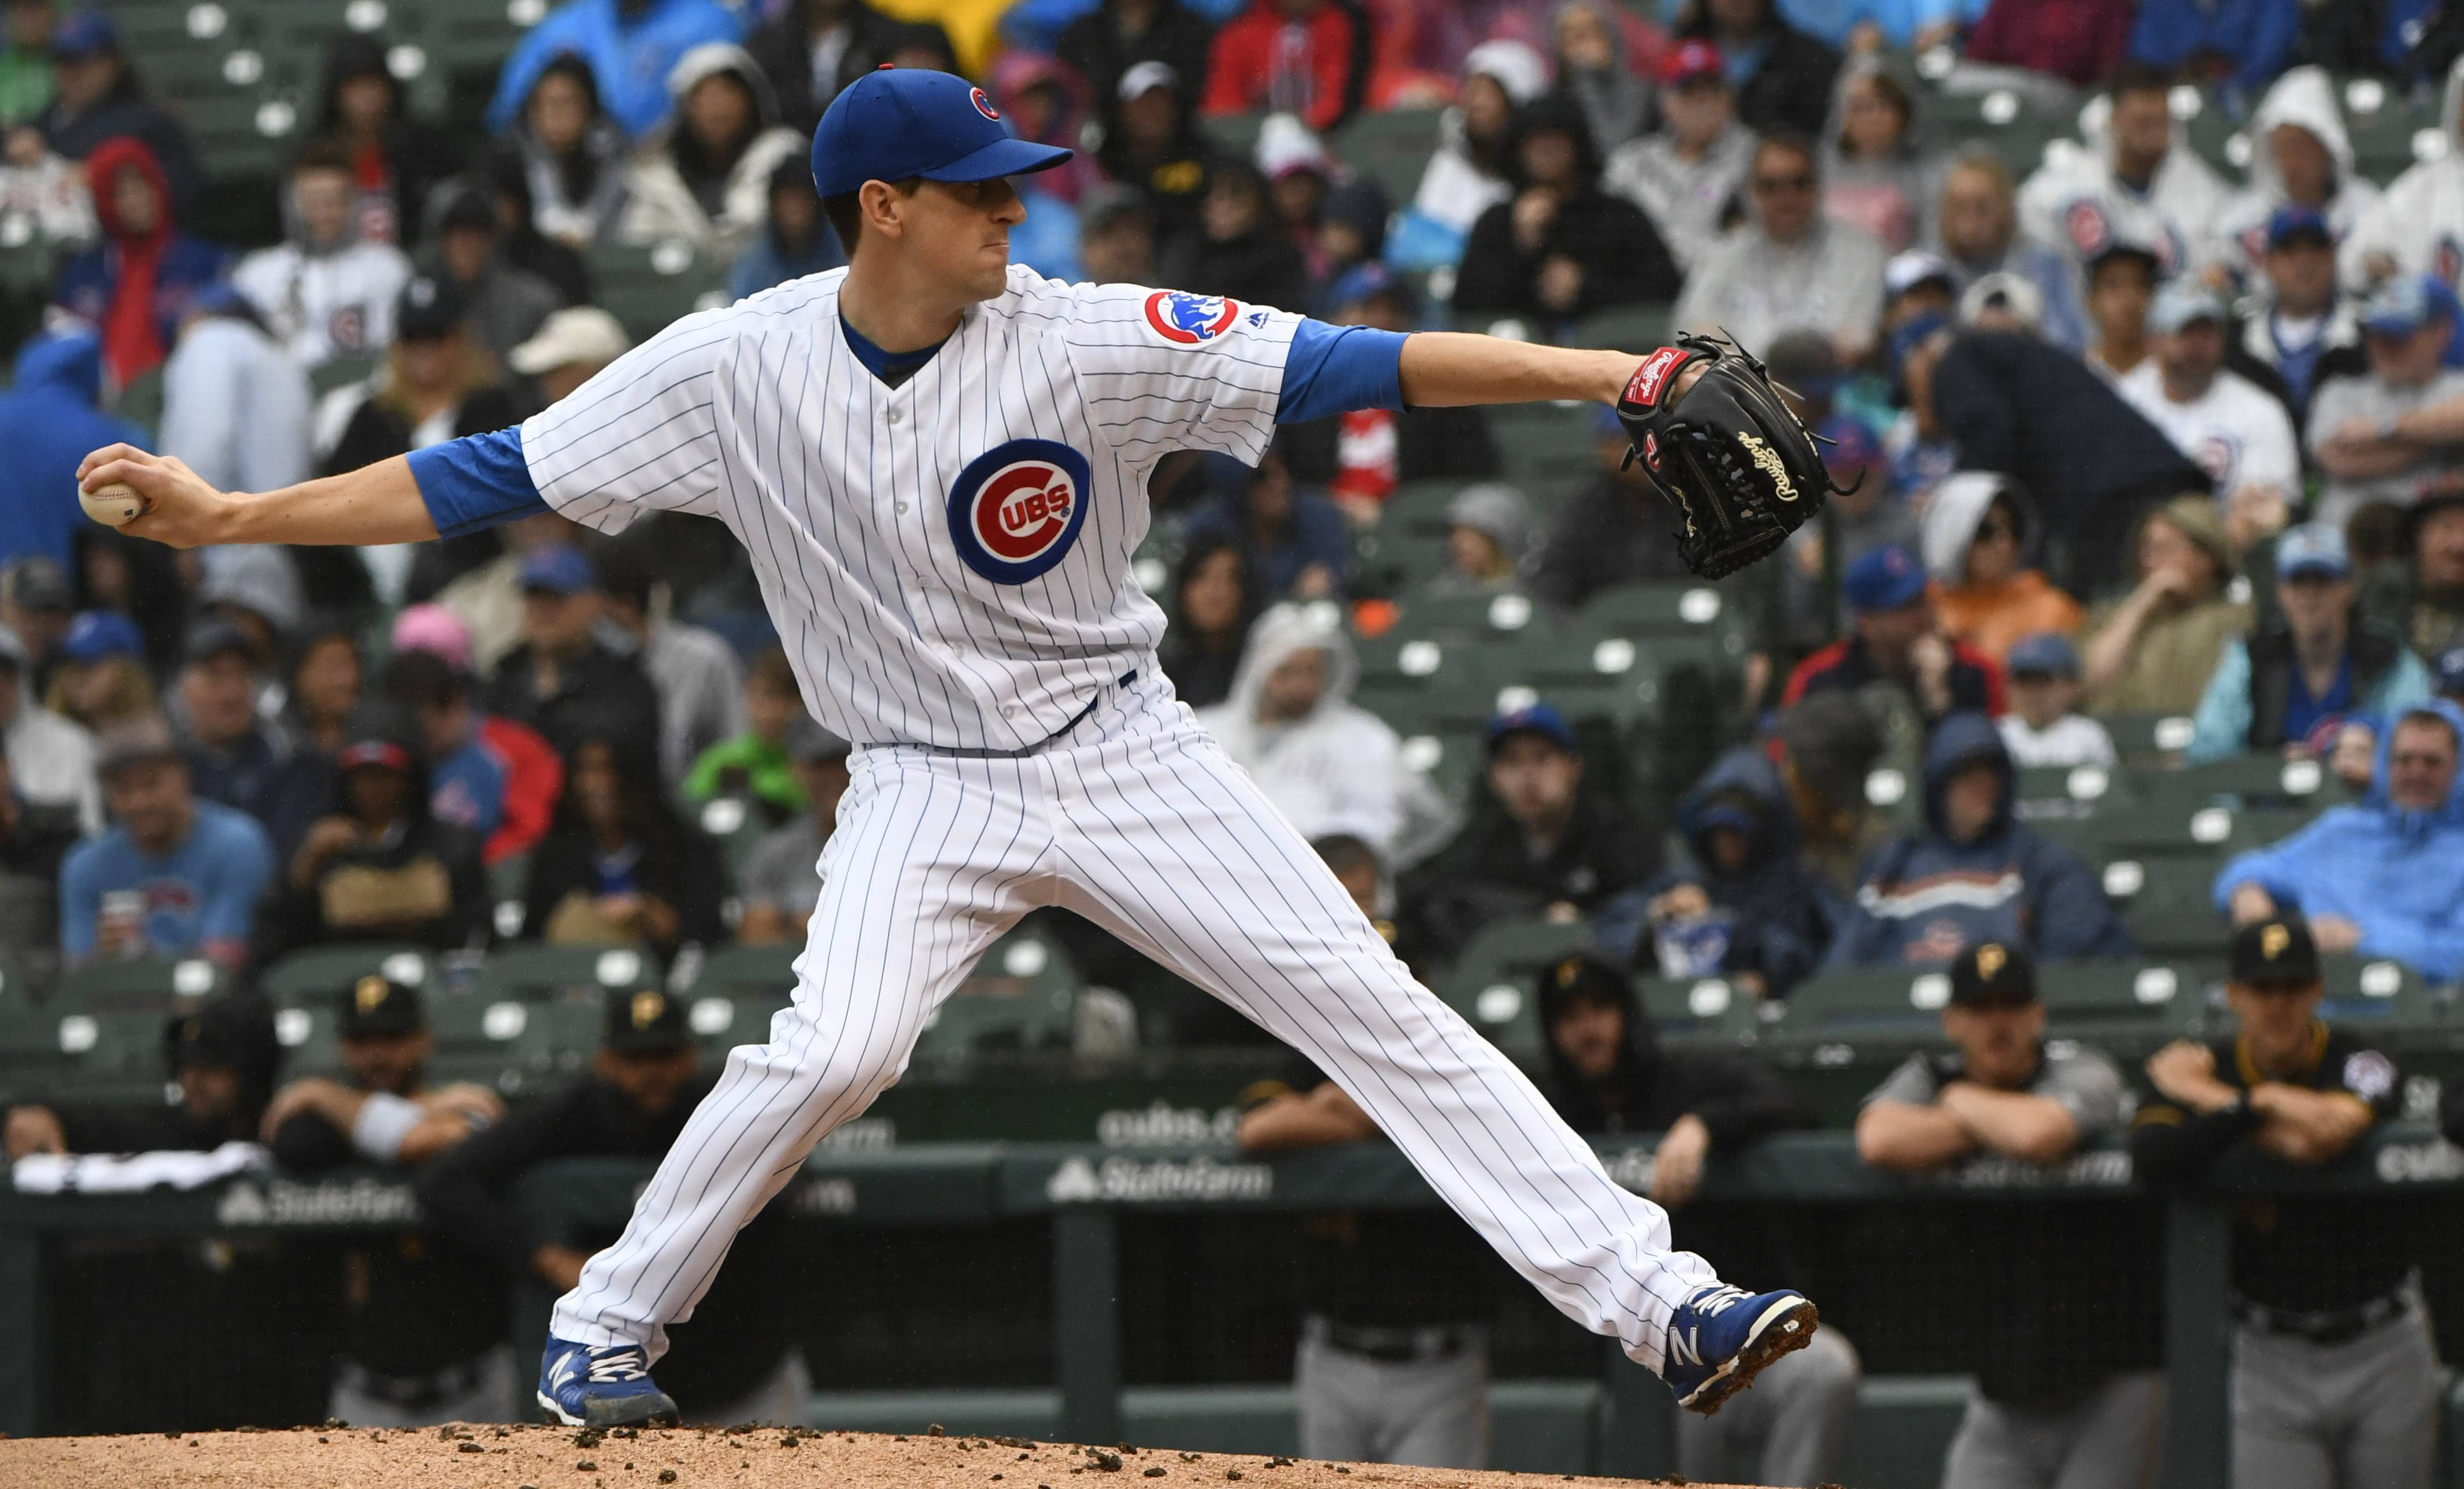 Maddon stands behind decision to pinch hit La Stella for Hendricks